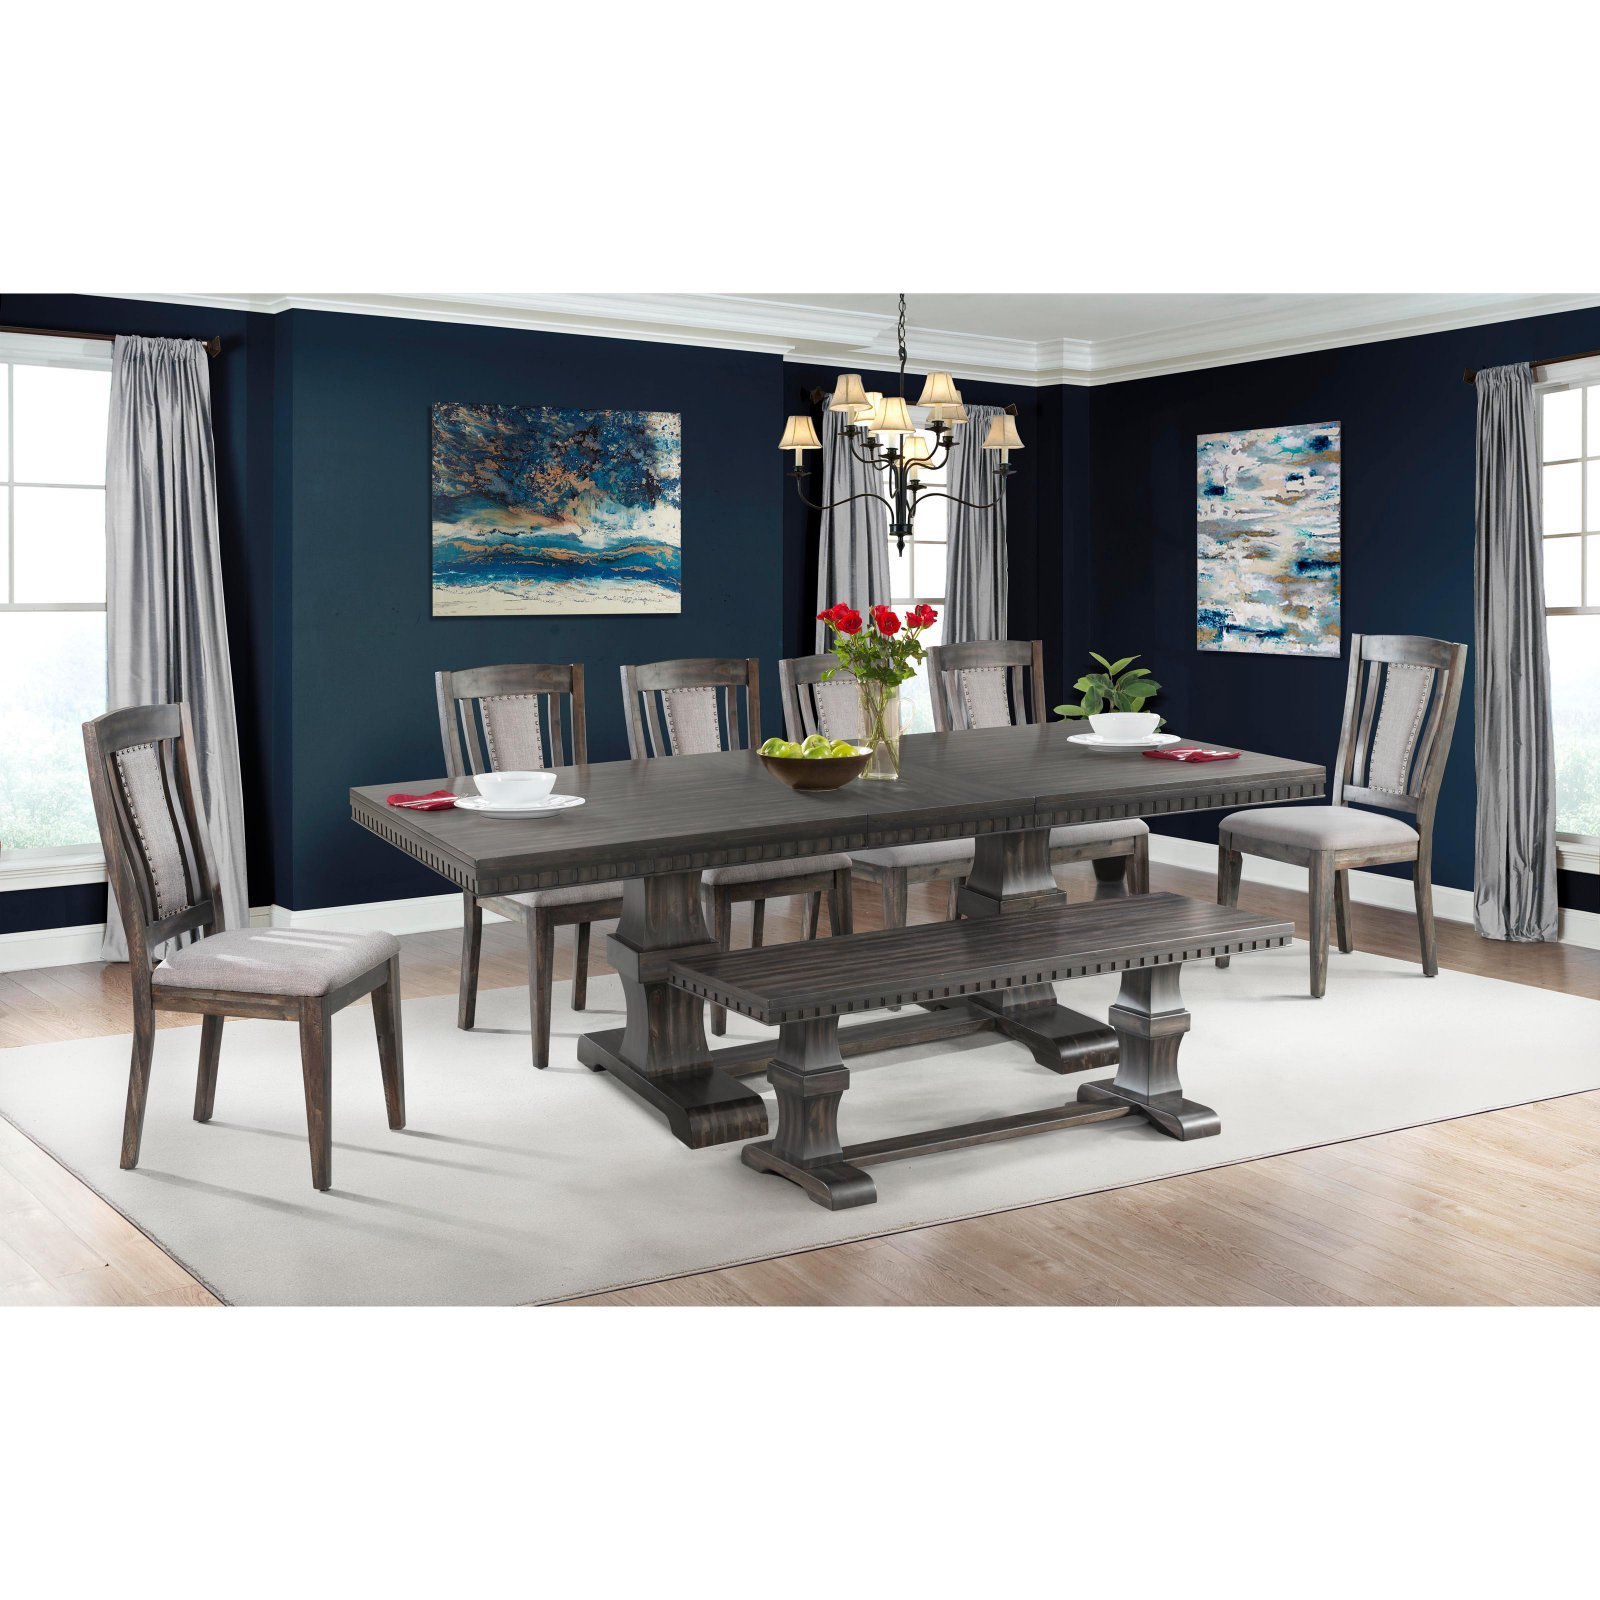 Picket House Furnishings Steele Wooden Dining Bench in Gray Oak by Picket House Furnishings (Image #2)